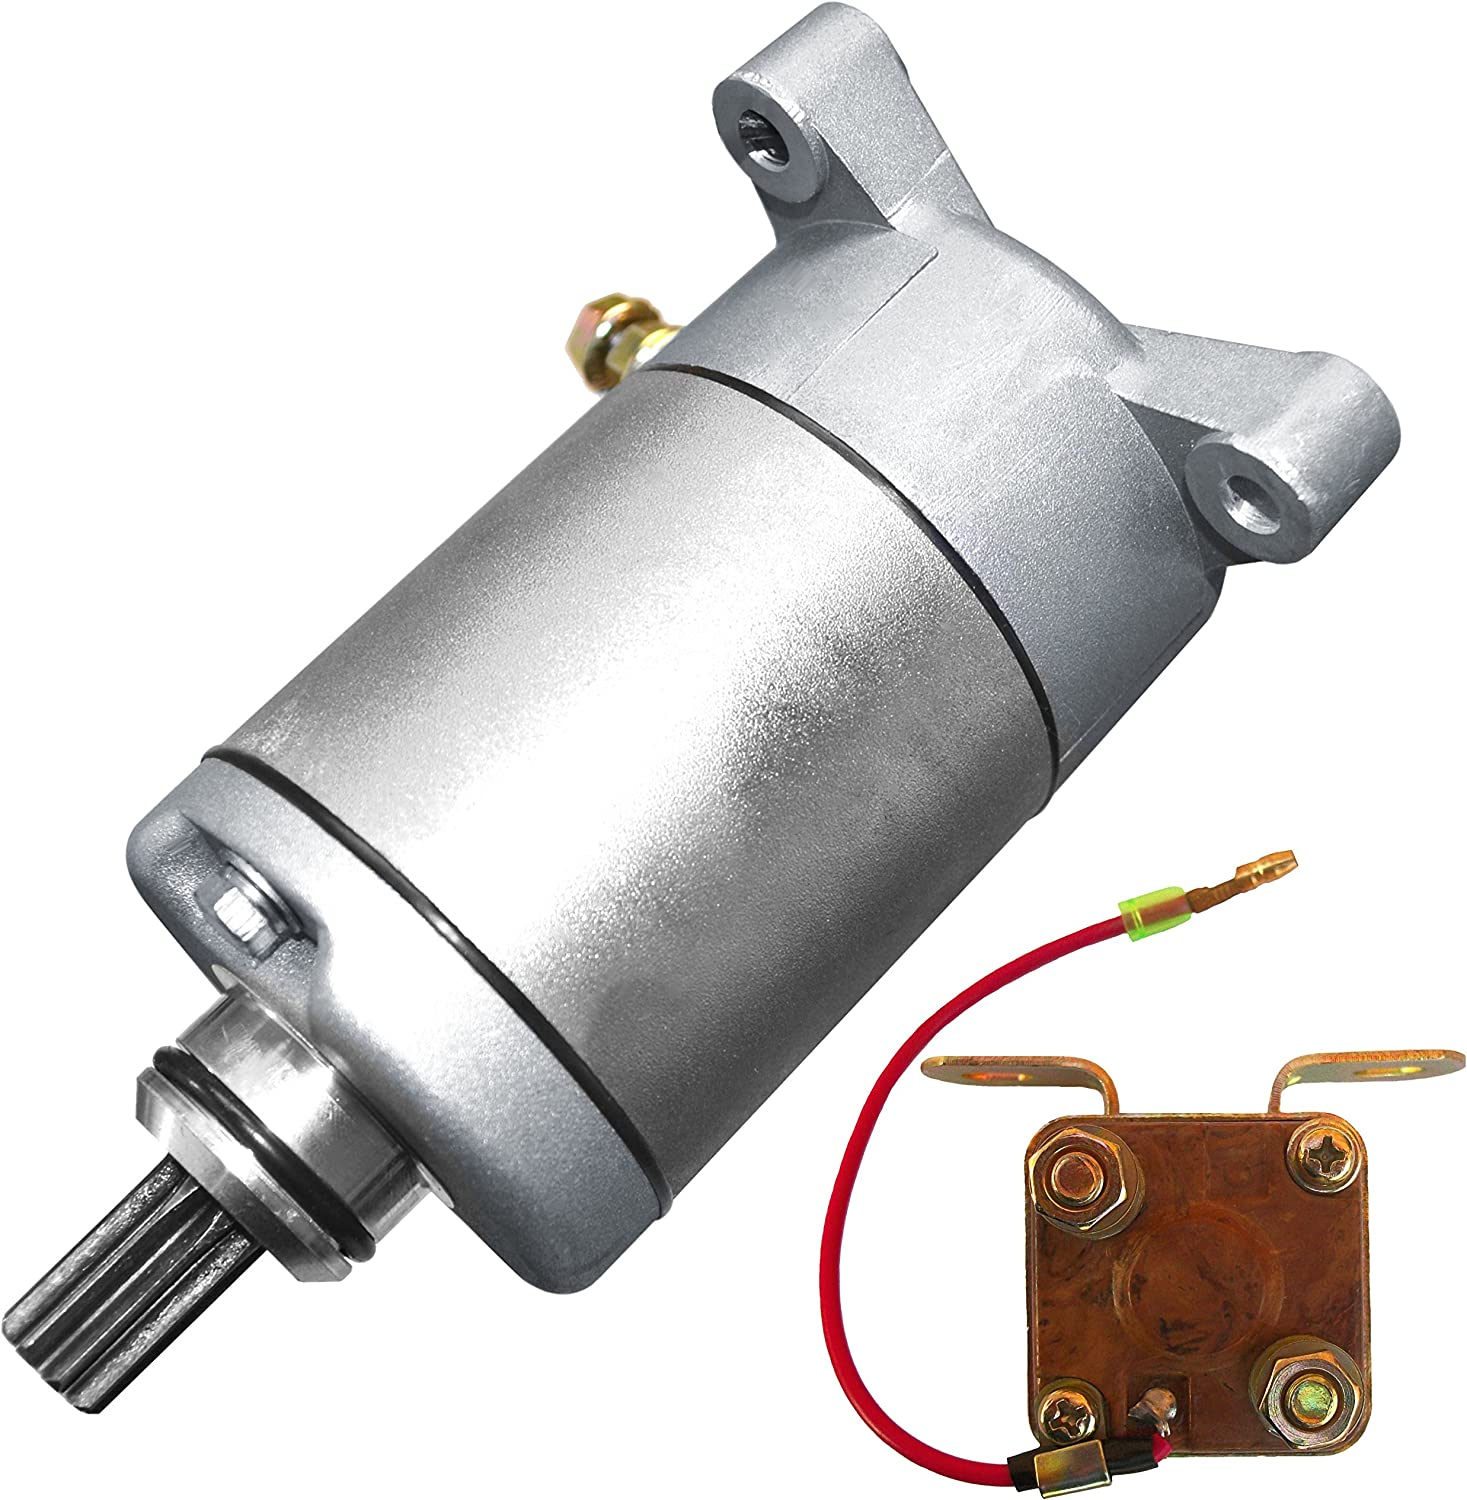 ZOOM Tampa Mall PARTS Starter Relay Solenoid 2002 2001 Pola 2000 price for